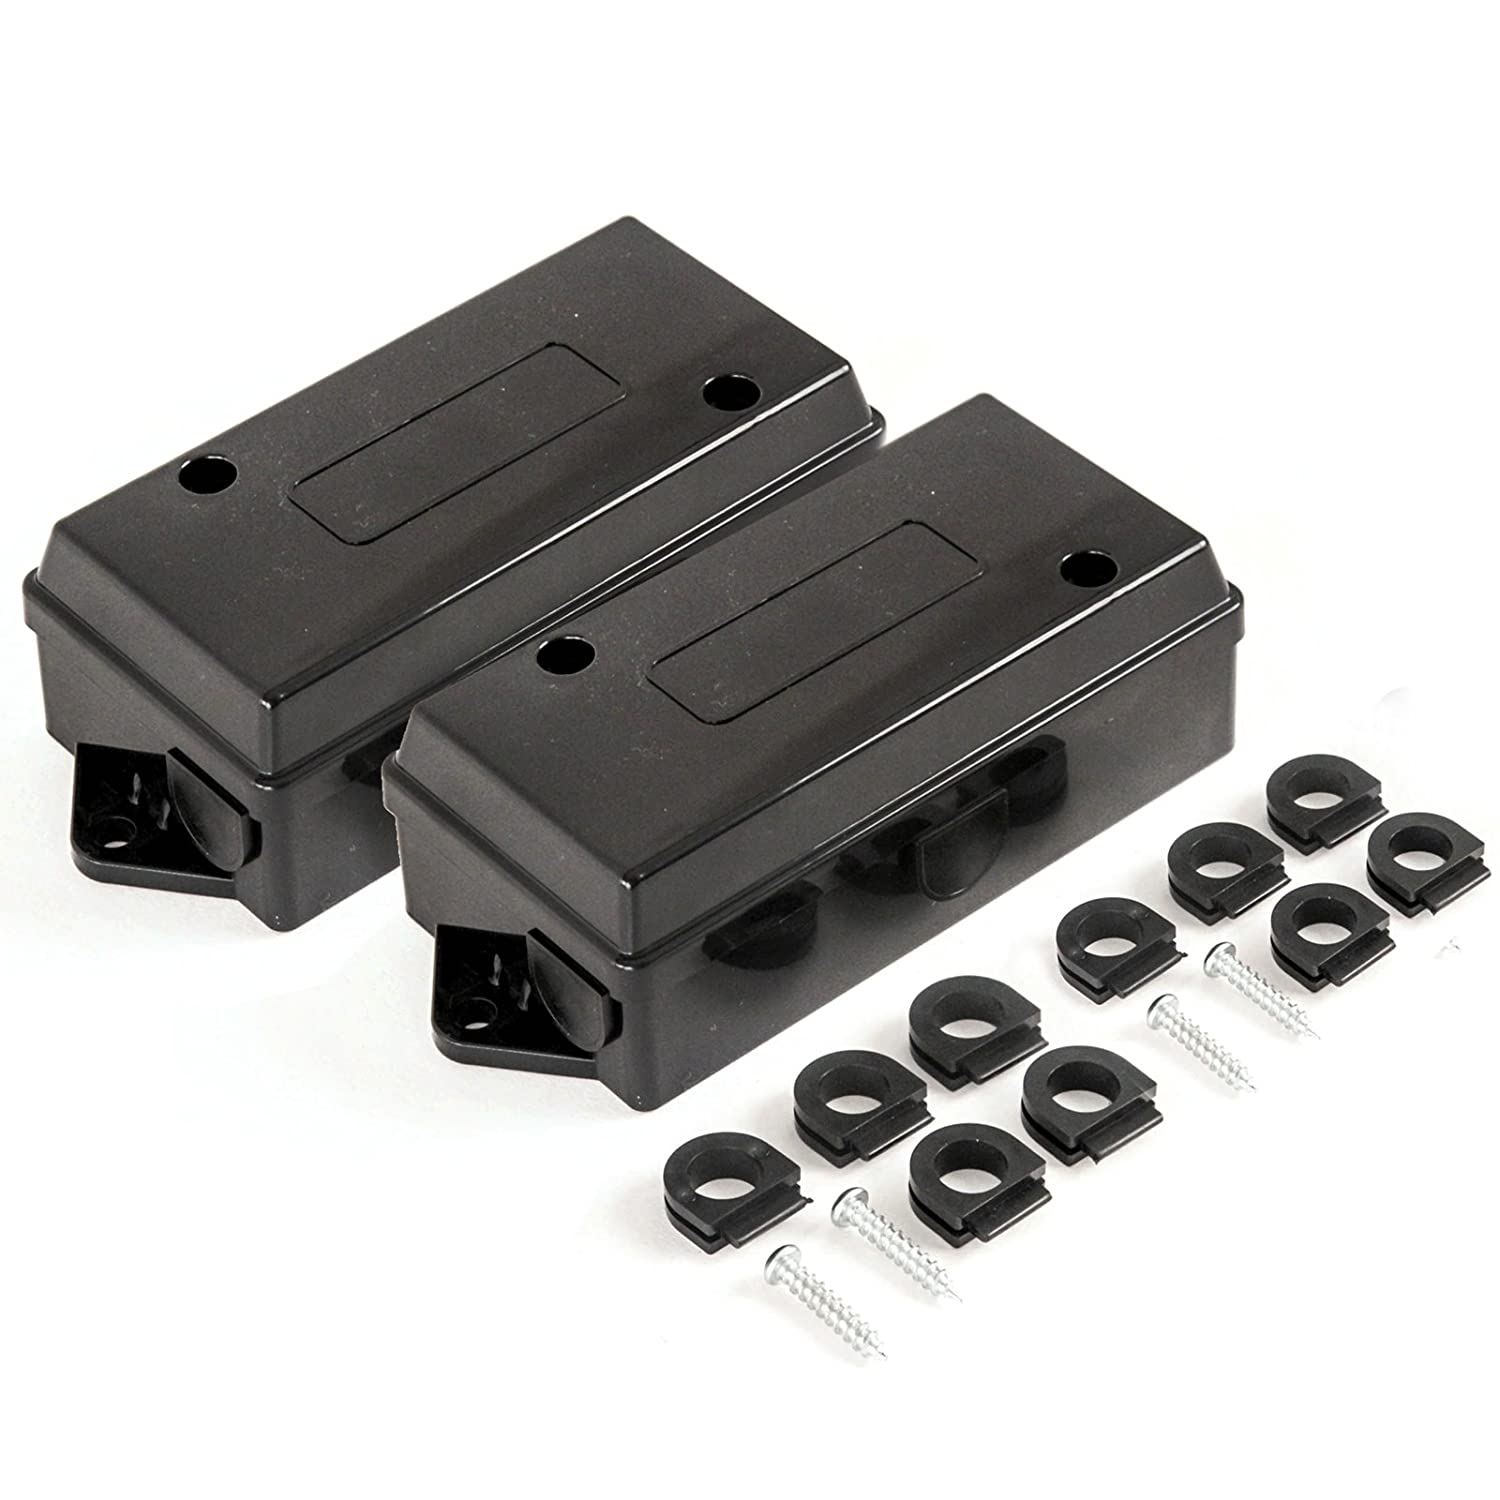 Best In Auto 2 - Trailer Wiring Junction Box for 7 Way Trailer Wire Connectors